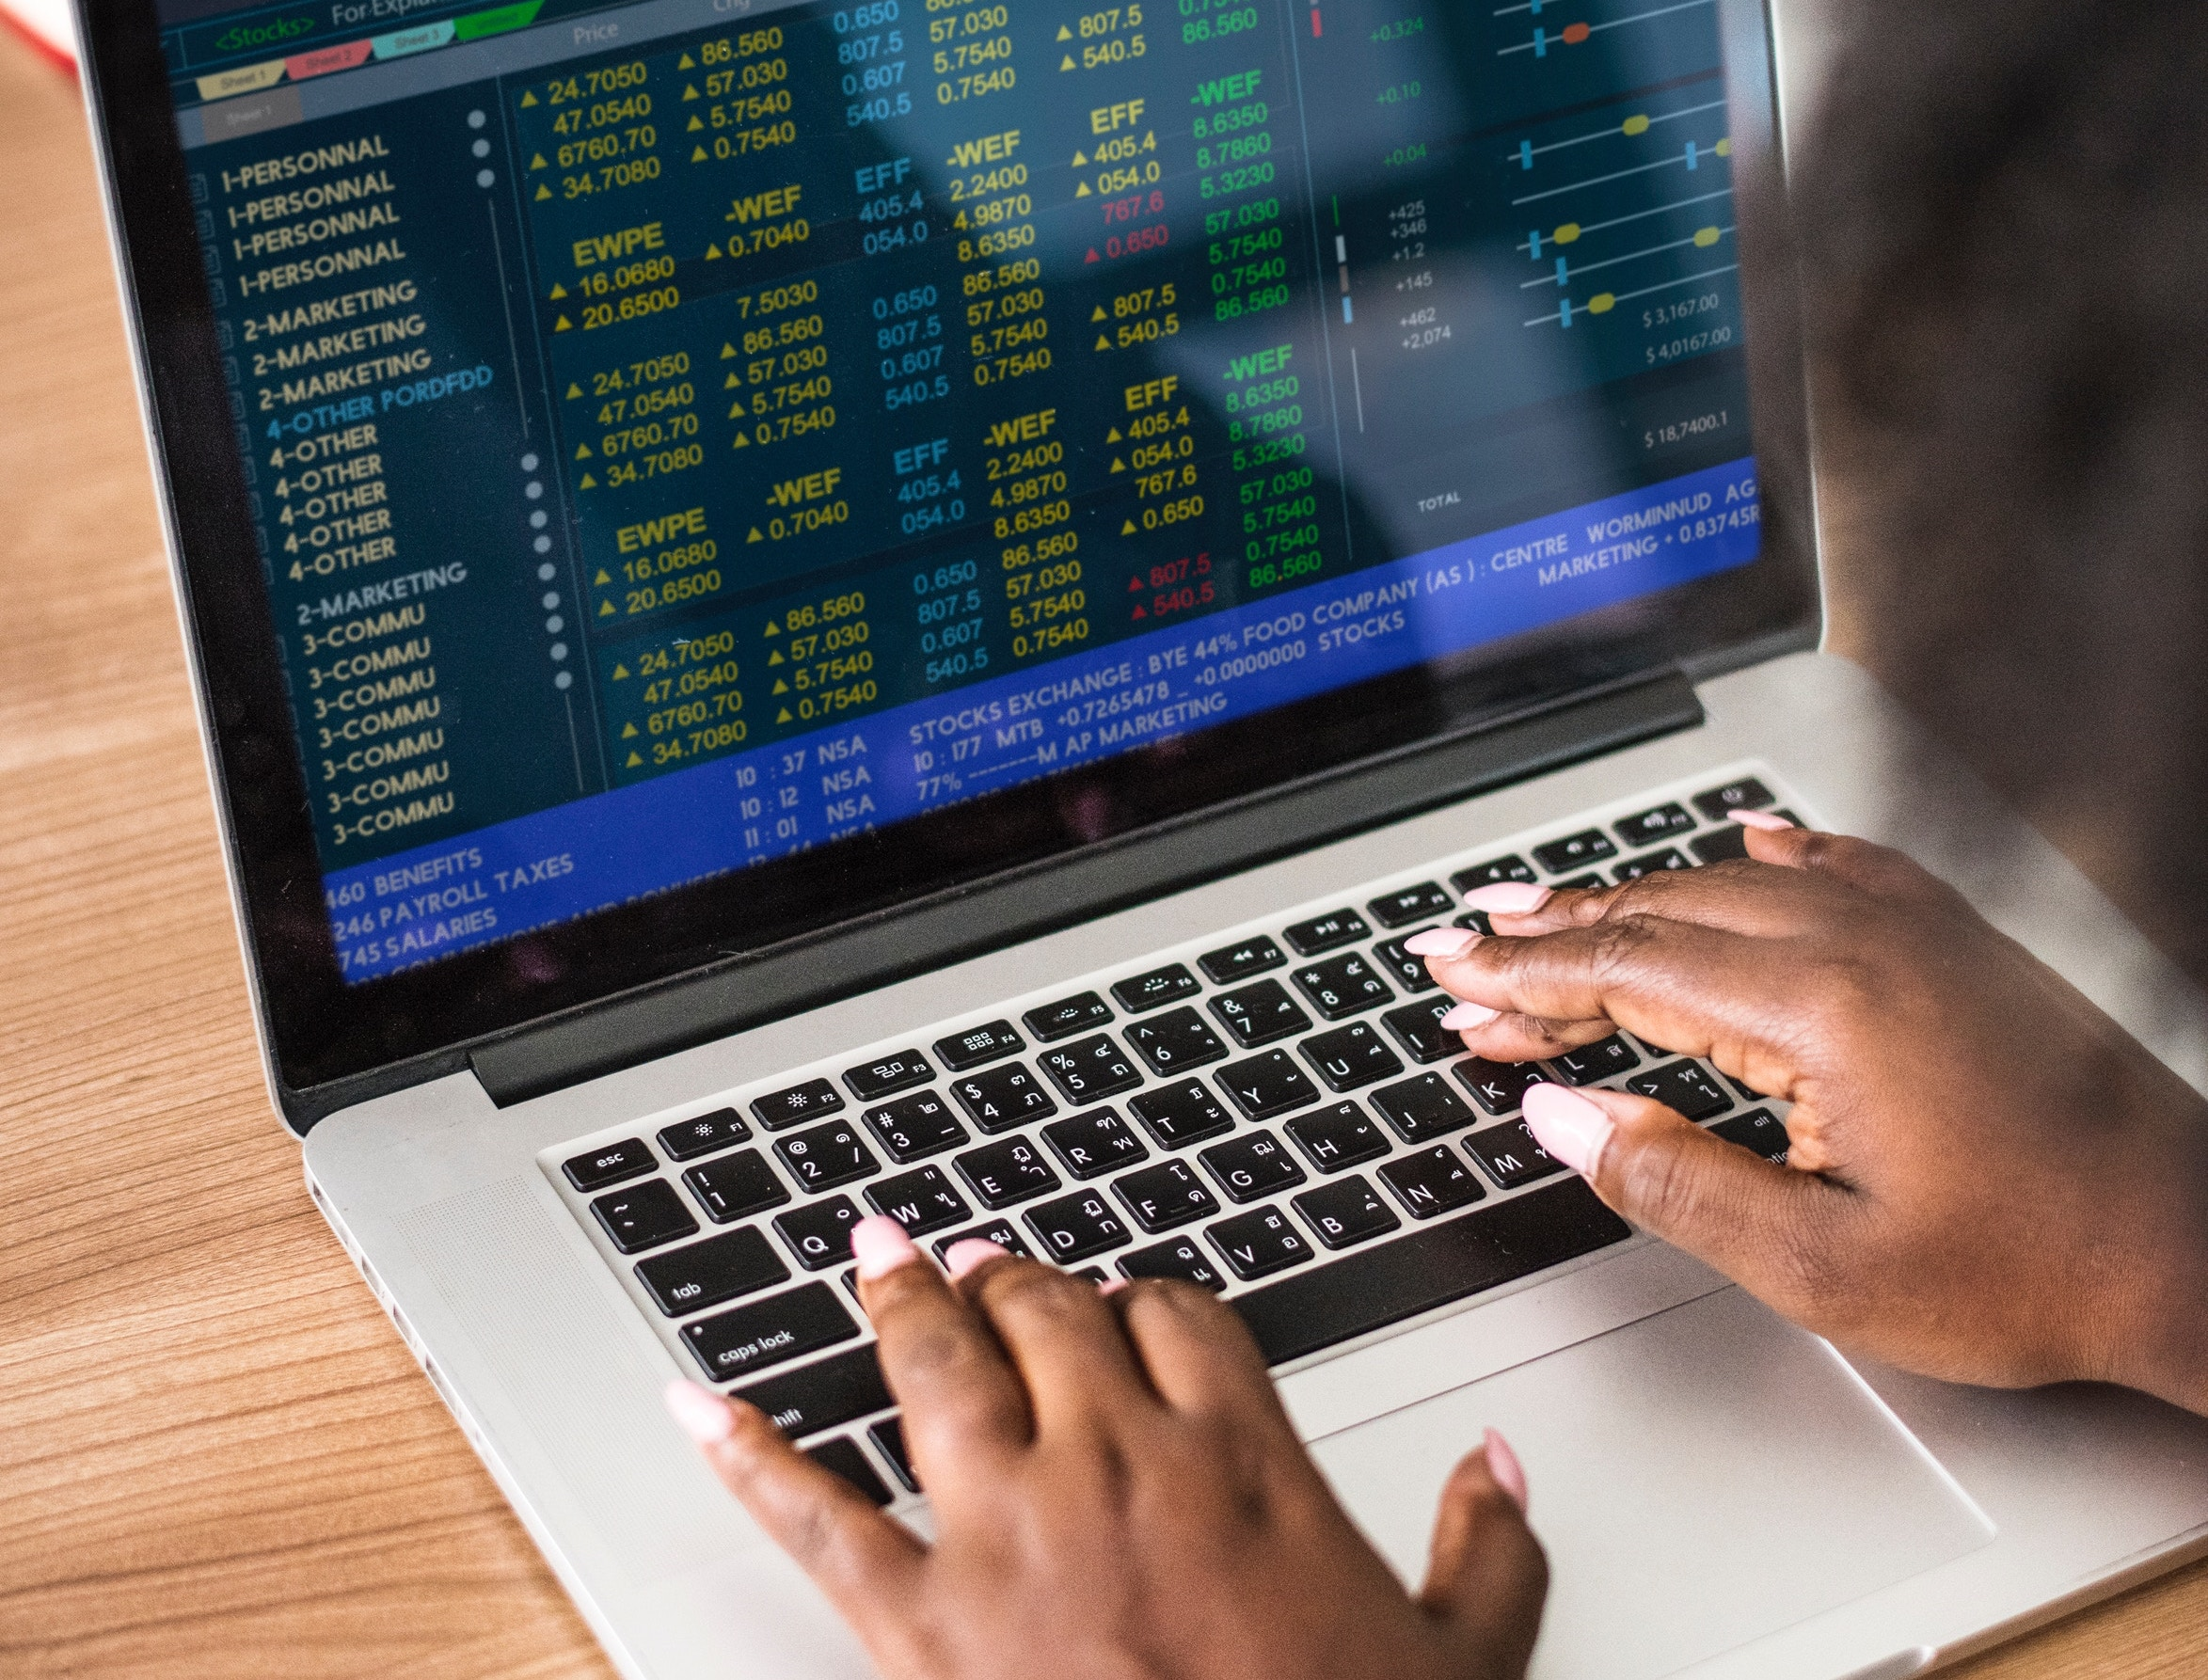 Black woman types on her laptop while her screen shows updated stock market numbers